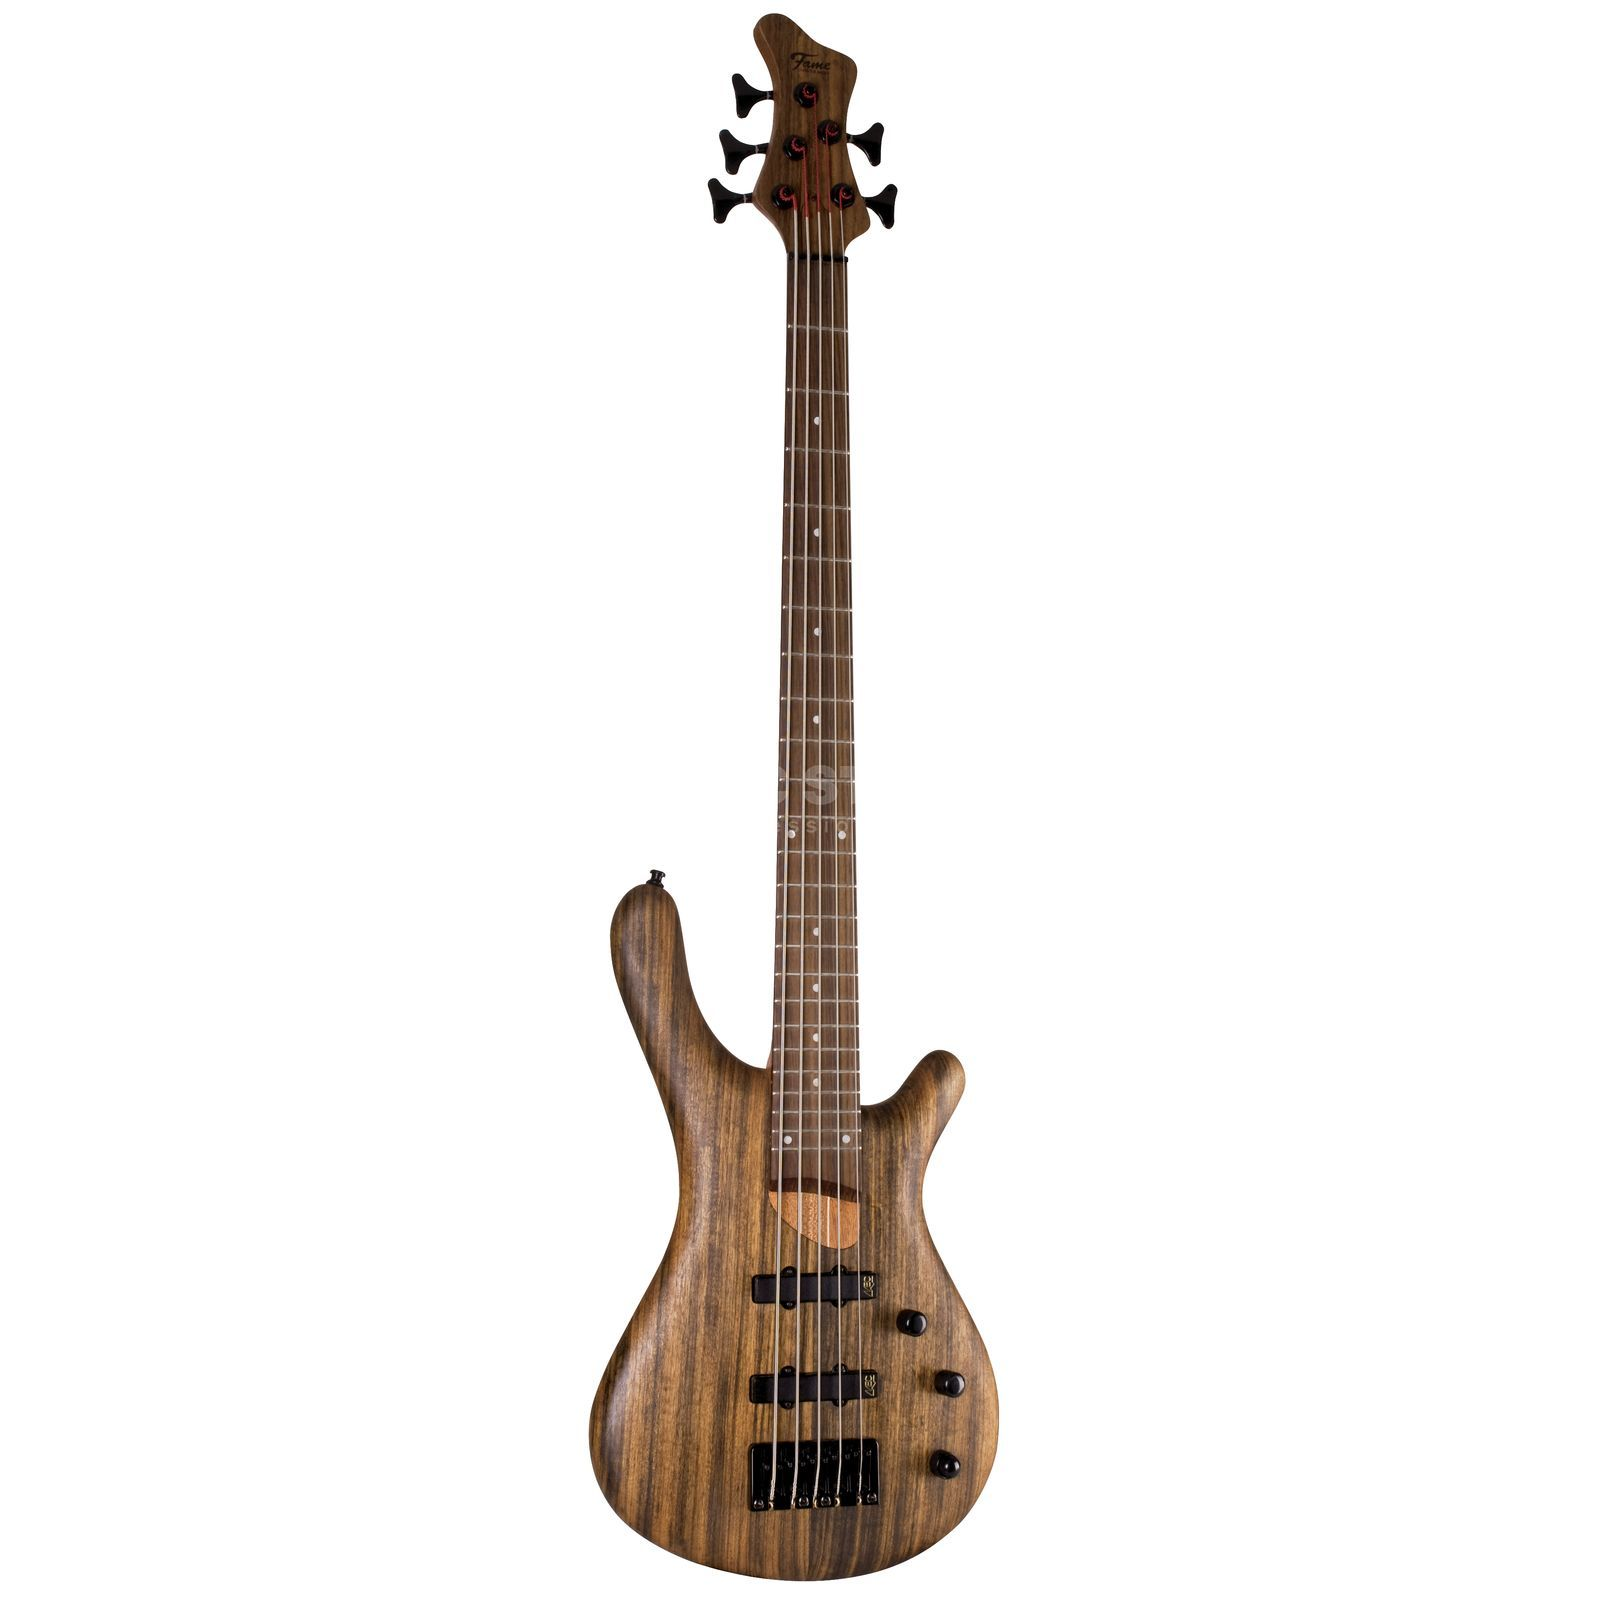 Fame Baphomet 5 Natural 5-String E- Bass Guitar, Natural Oil Product Image